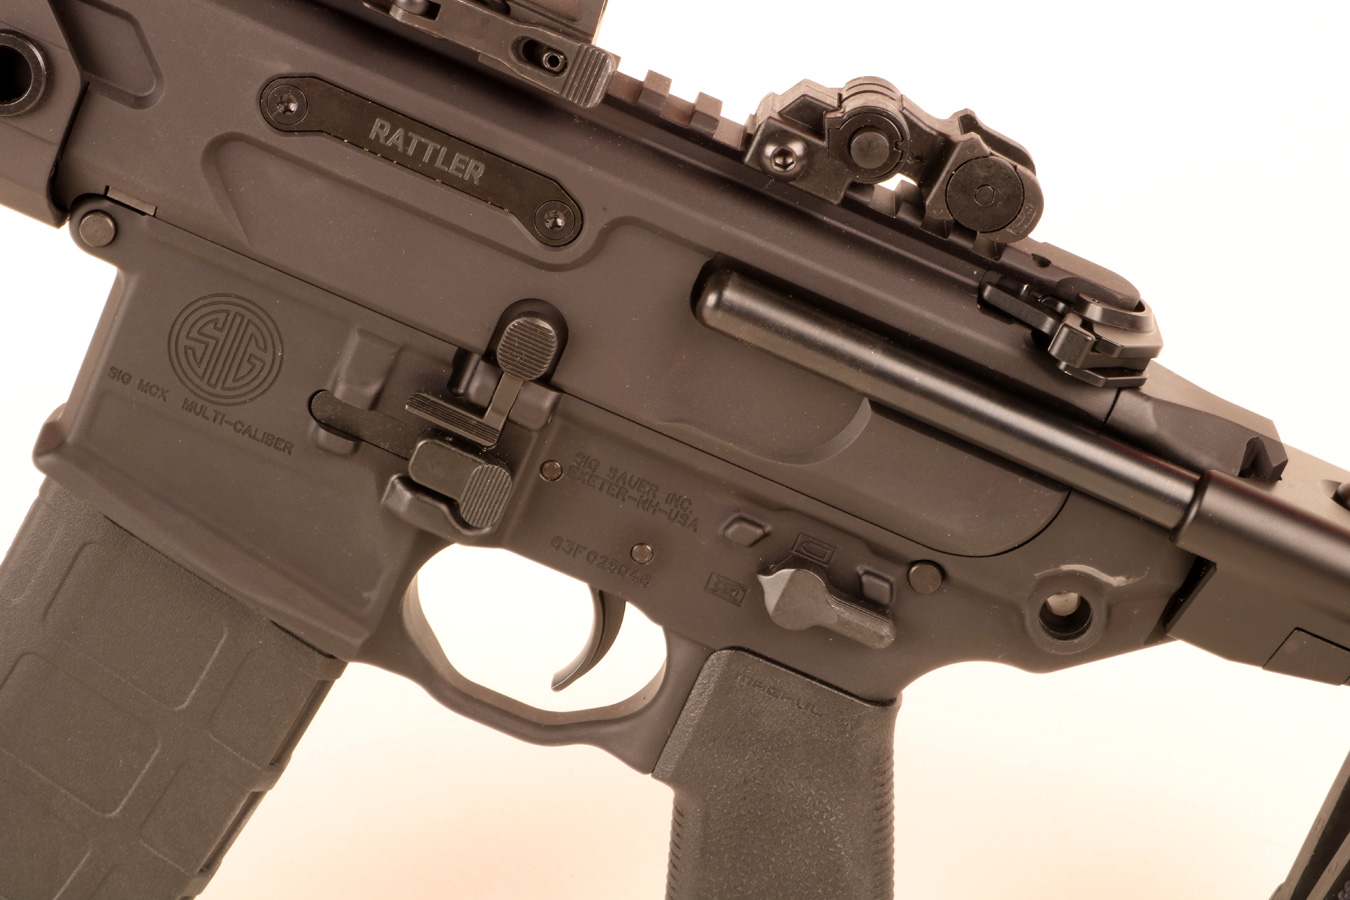 Magazine release on the SIG MCX Rattler